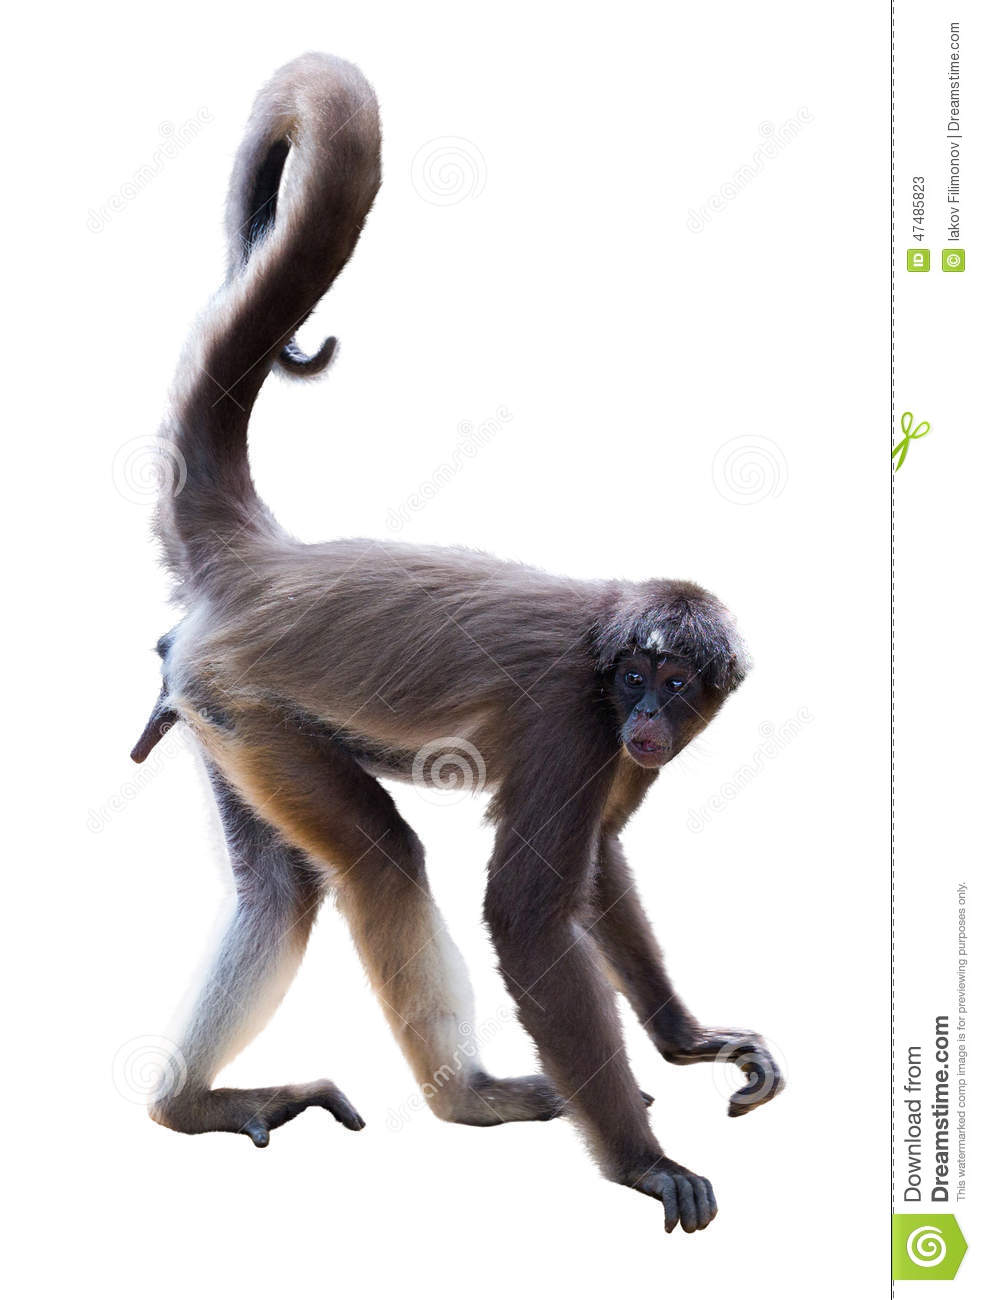 Spider Monkey Over White Background Stock Photo - Image: 47485823